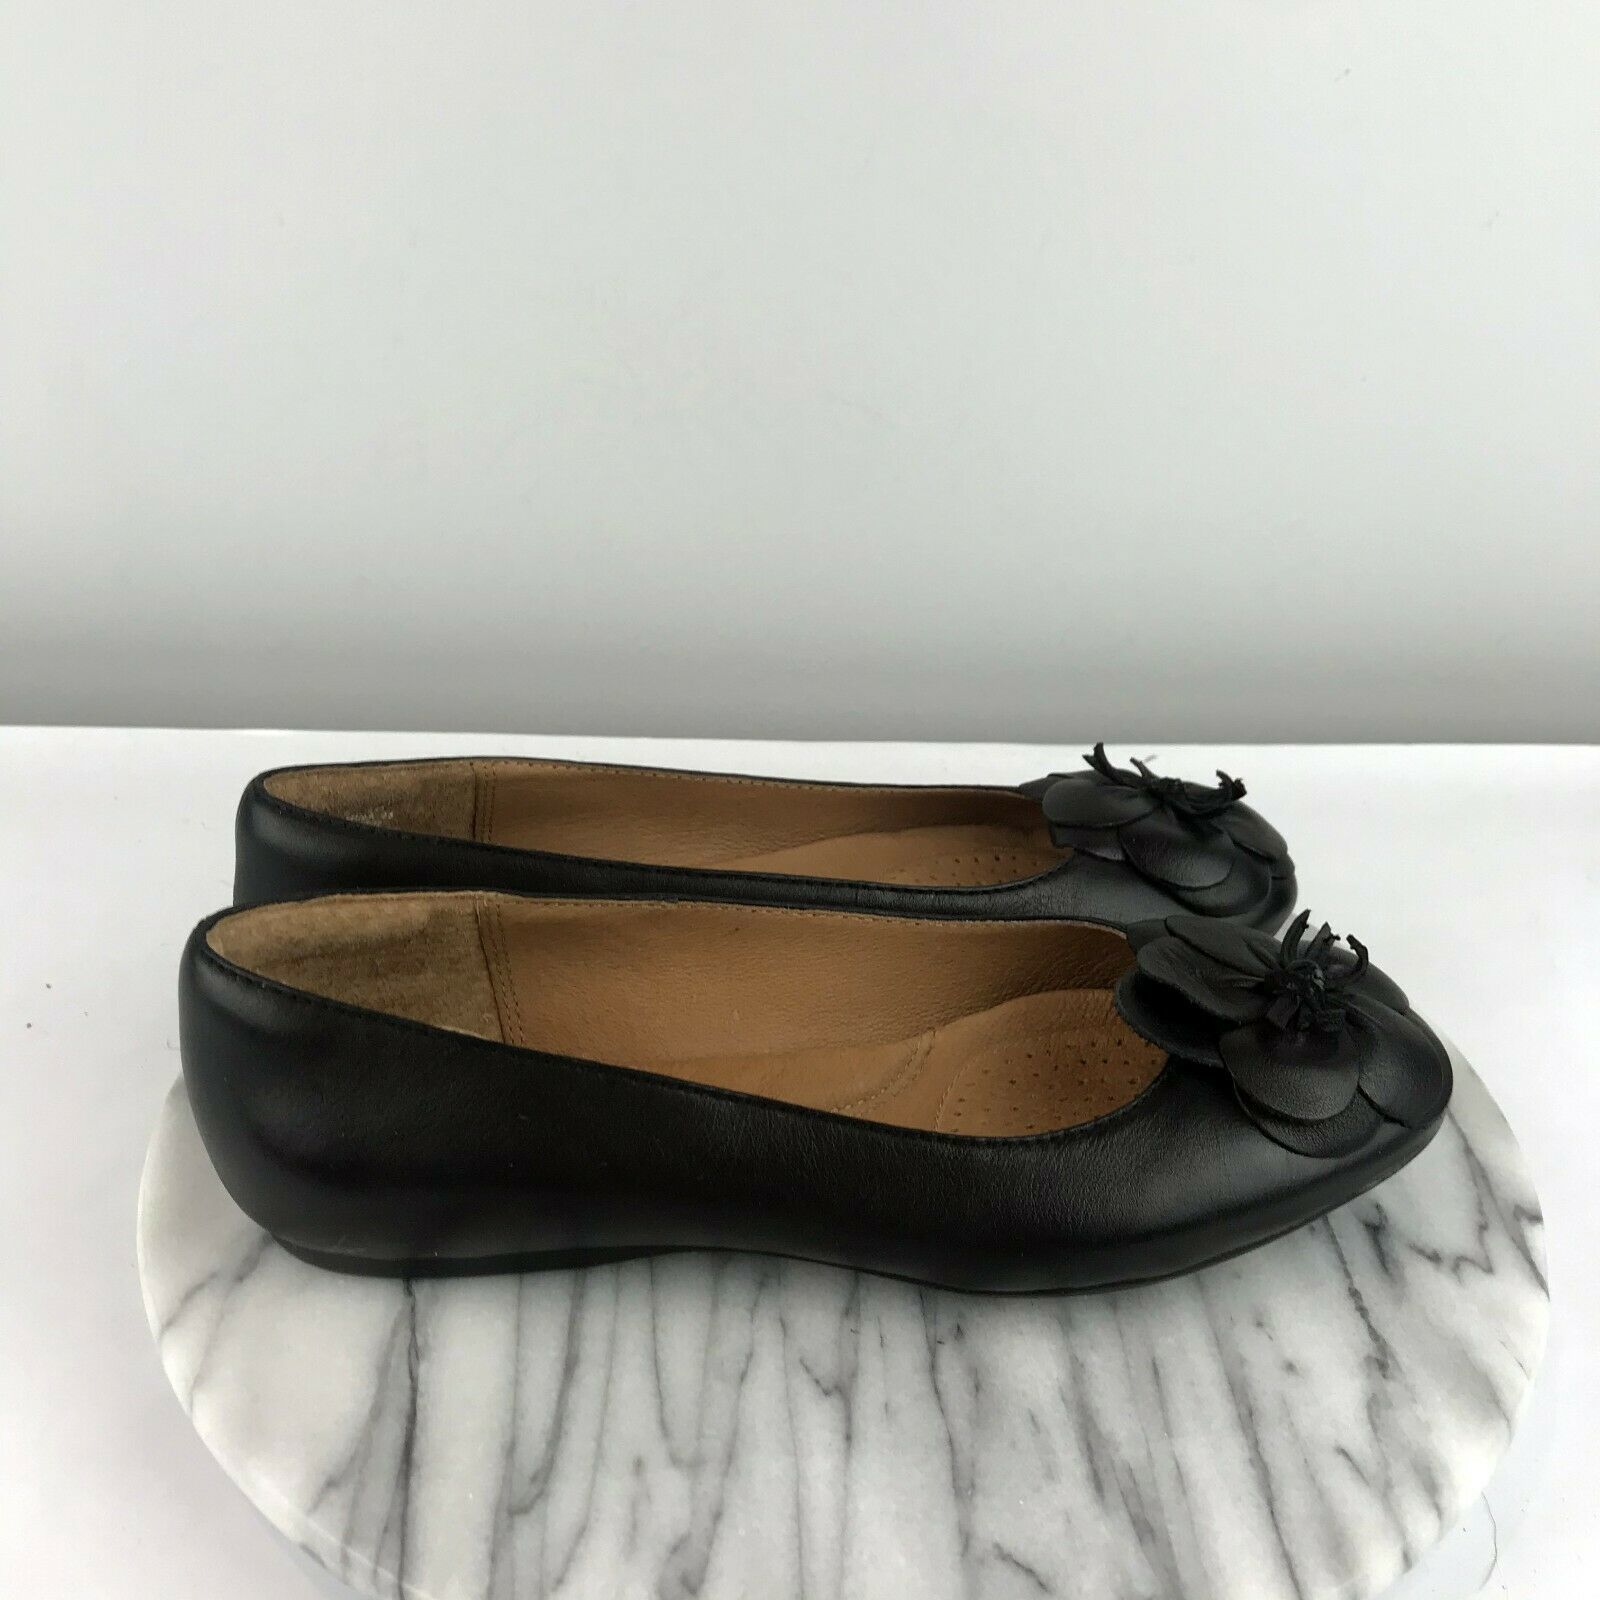 Primary image for Clarks Artisan Aldea Palm Flower Womens Size 6.5 Black Leather Casual Flats